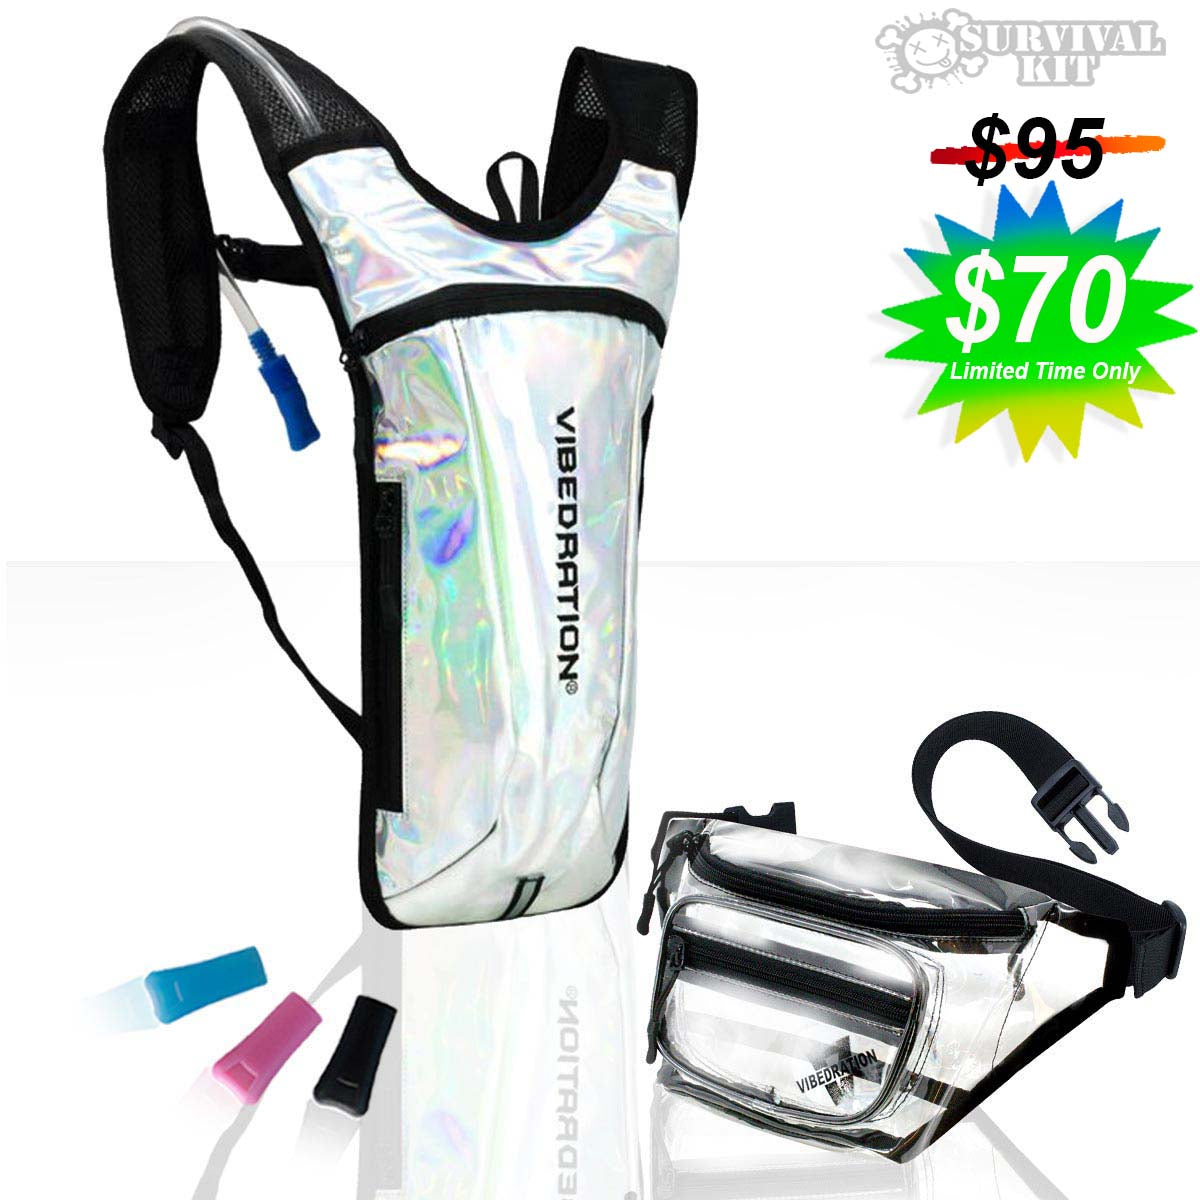 2 Liter Festival Survival Kit with Hydration Pack and Fanny Pack